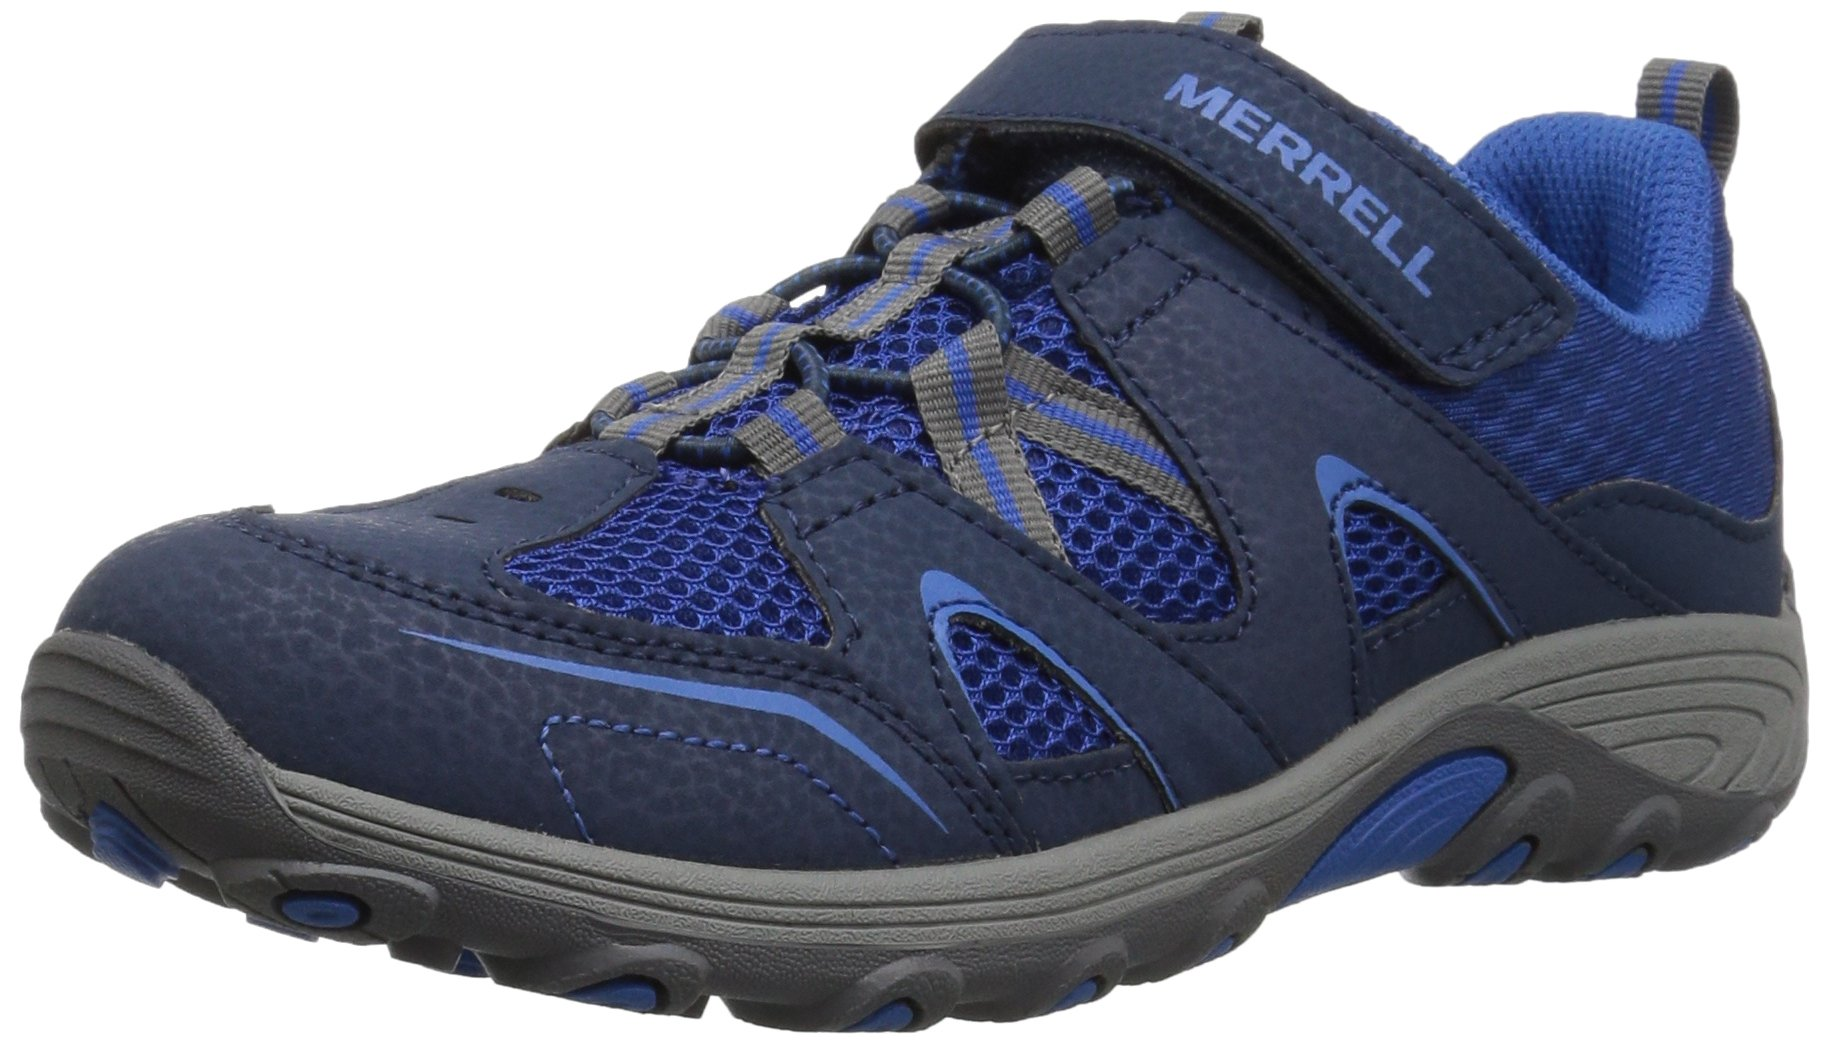 Merrell Trail Chaser Hiking Shoe, Navy, 4 M US Big Kid